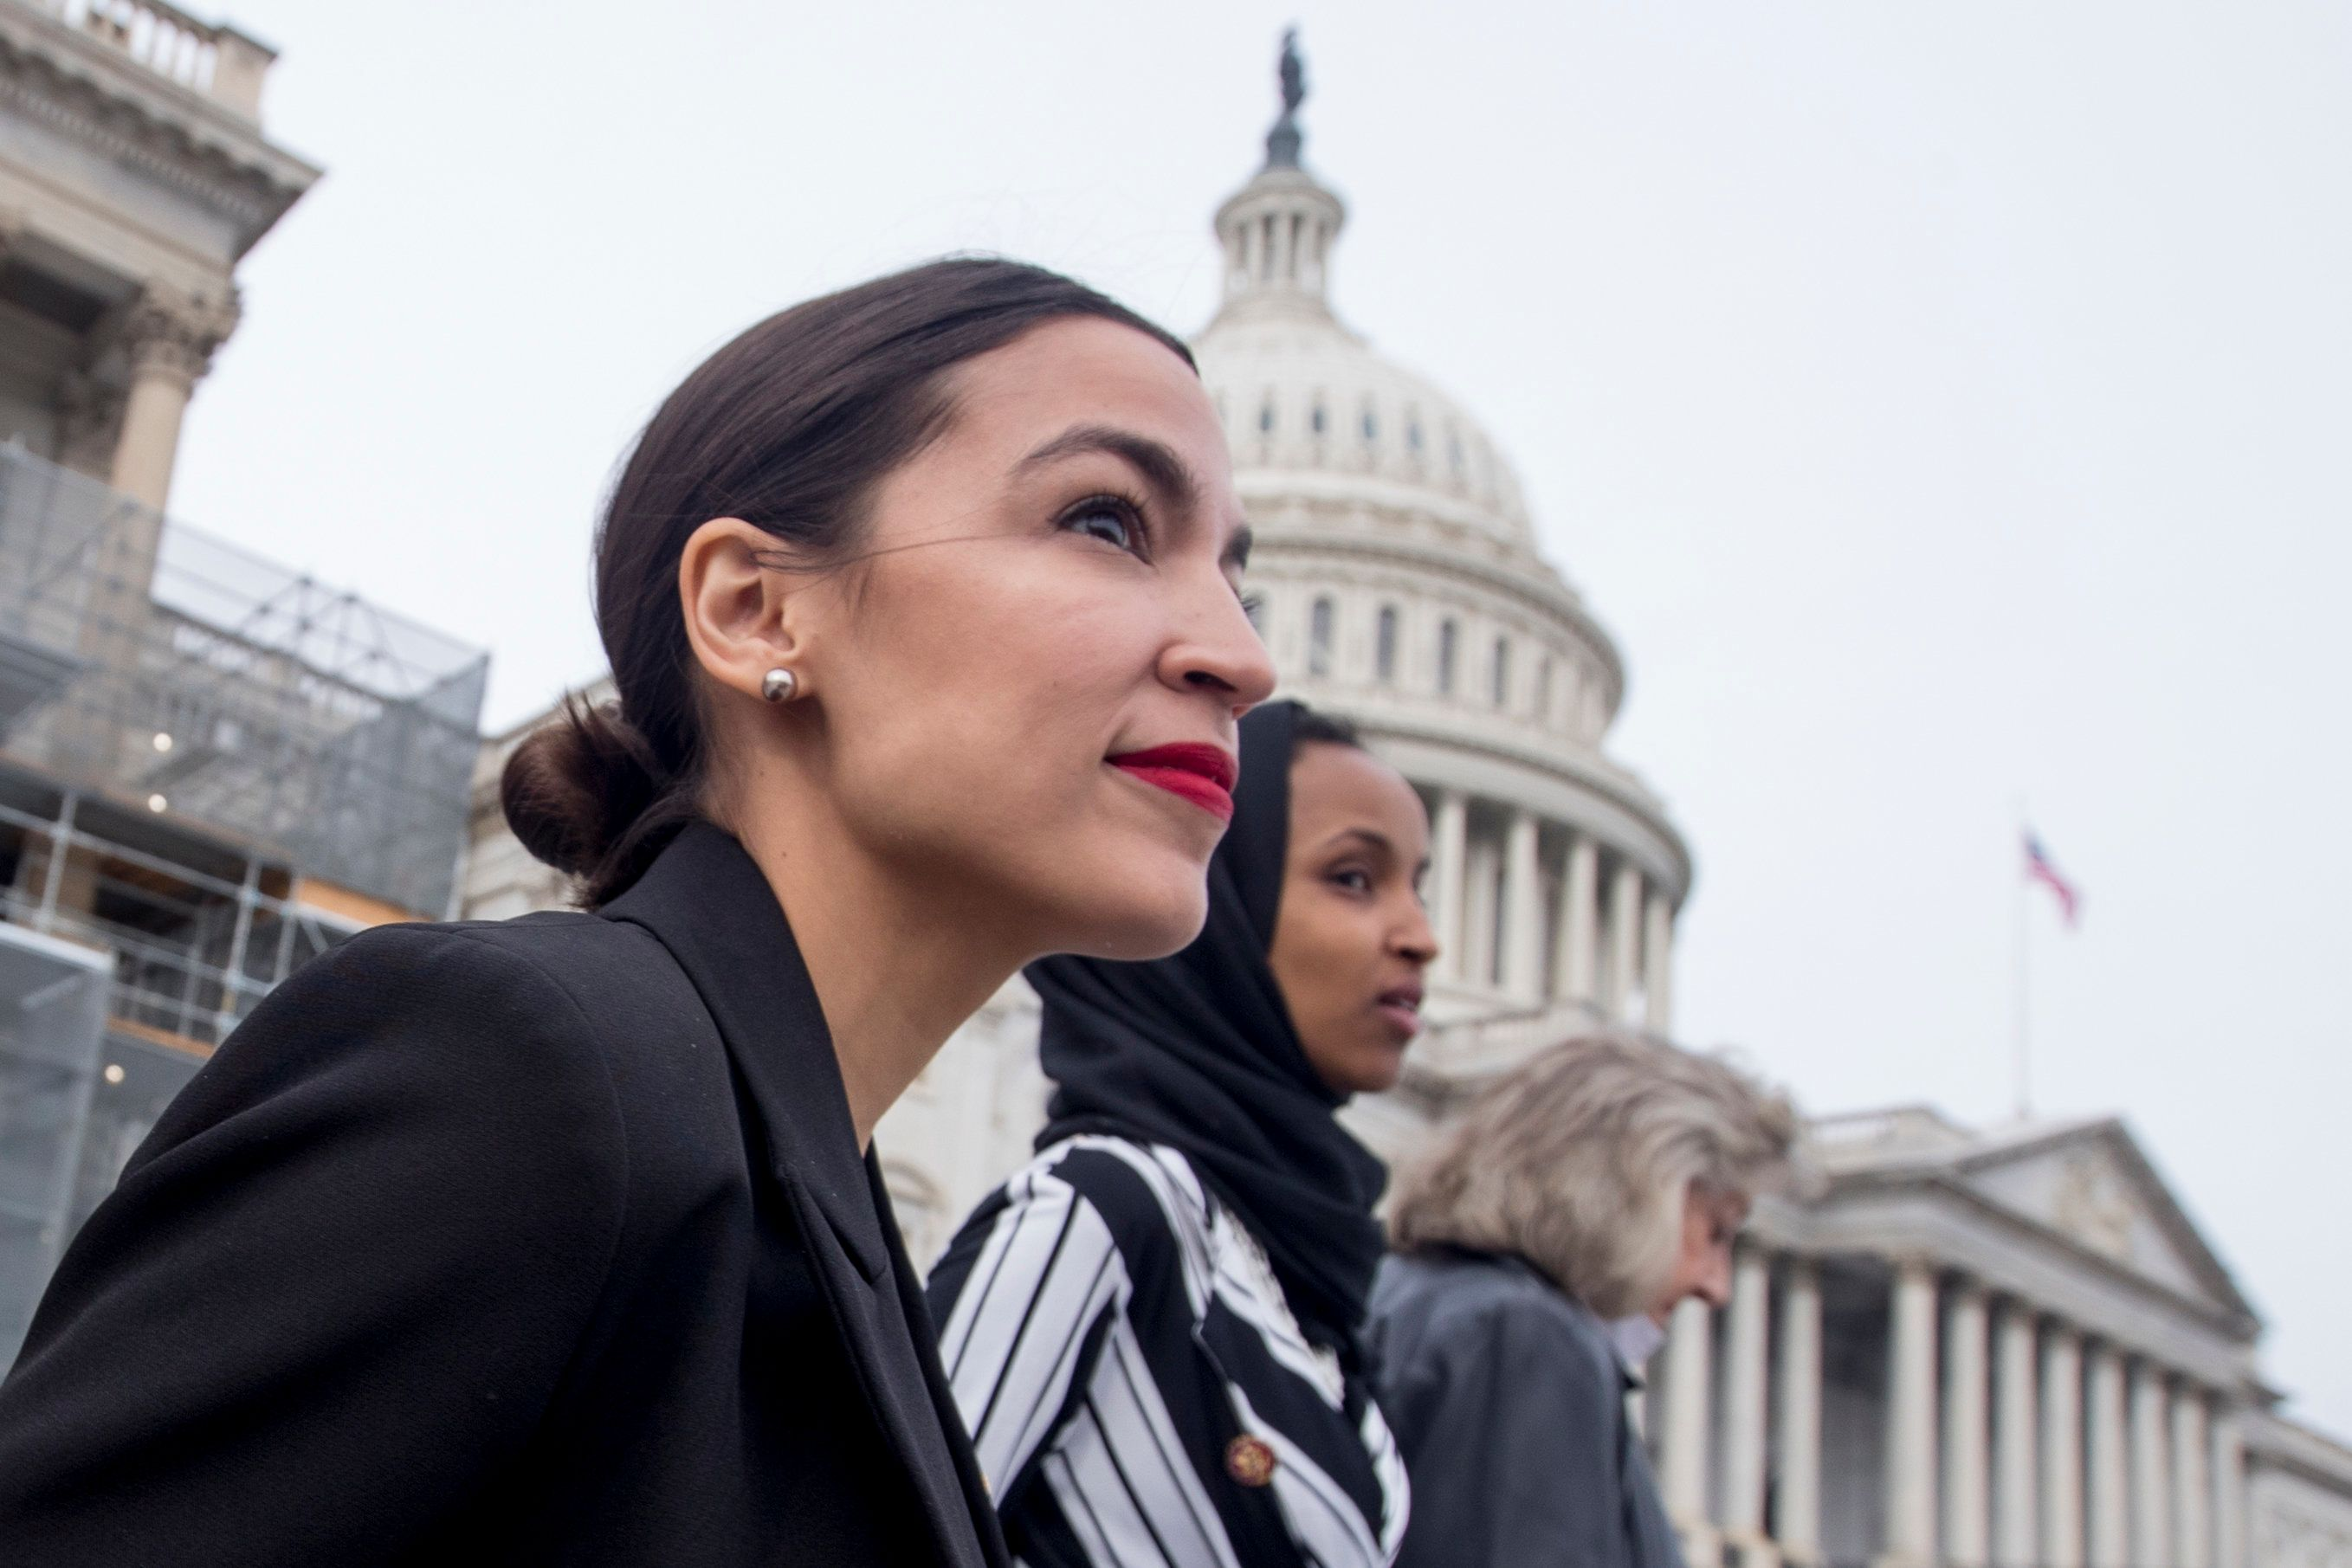 Rep. Alexandria Ocasio-Cortez, left, and D-N.Y., Rep. Ilhan Omar, D-Minn., center, walk down the House steps to take a group photograph of the House Democratic women members of the 116th Congress on the East Front Capitol Plaza on Capitol Hill in Washington, Friday, Jan. 4, 2019, as the 116th Congress begins. Also pictured is Rep. Dina Titus, D-Nev., right. (AP Photo/Andrew Harnik)